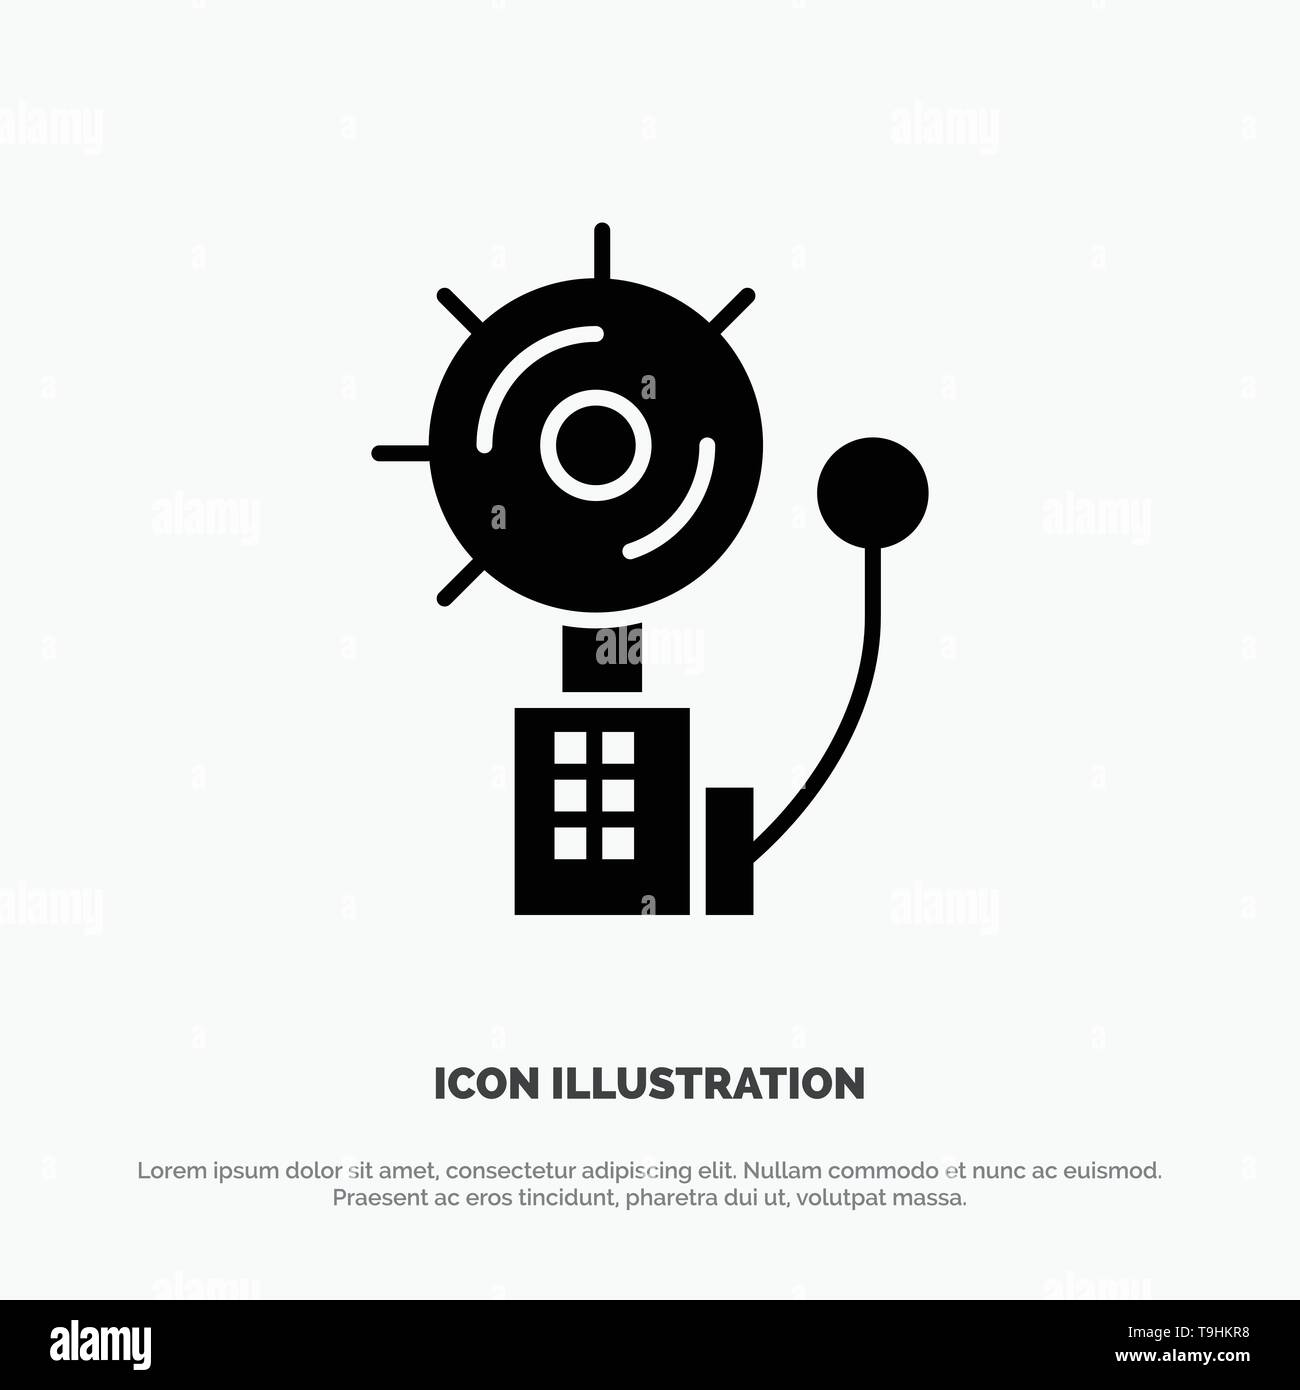 Alarm, Alert, Bell, Fire, Intruder solid Glyph Icon vector - Stock Image